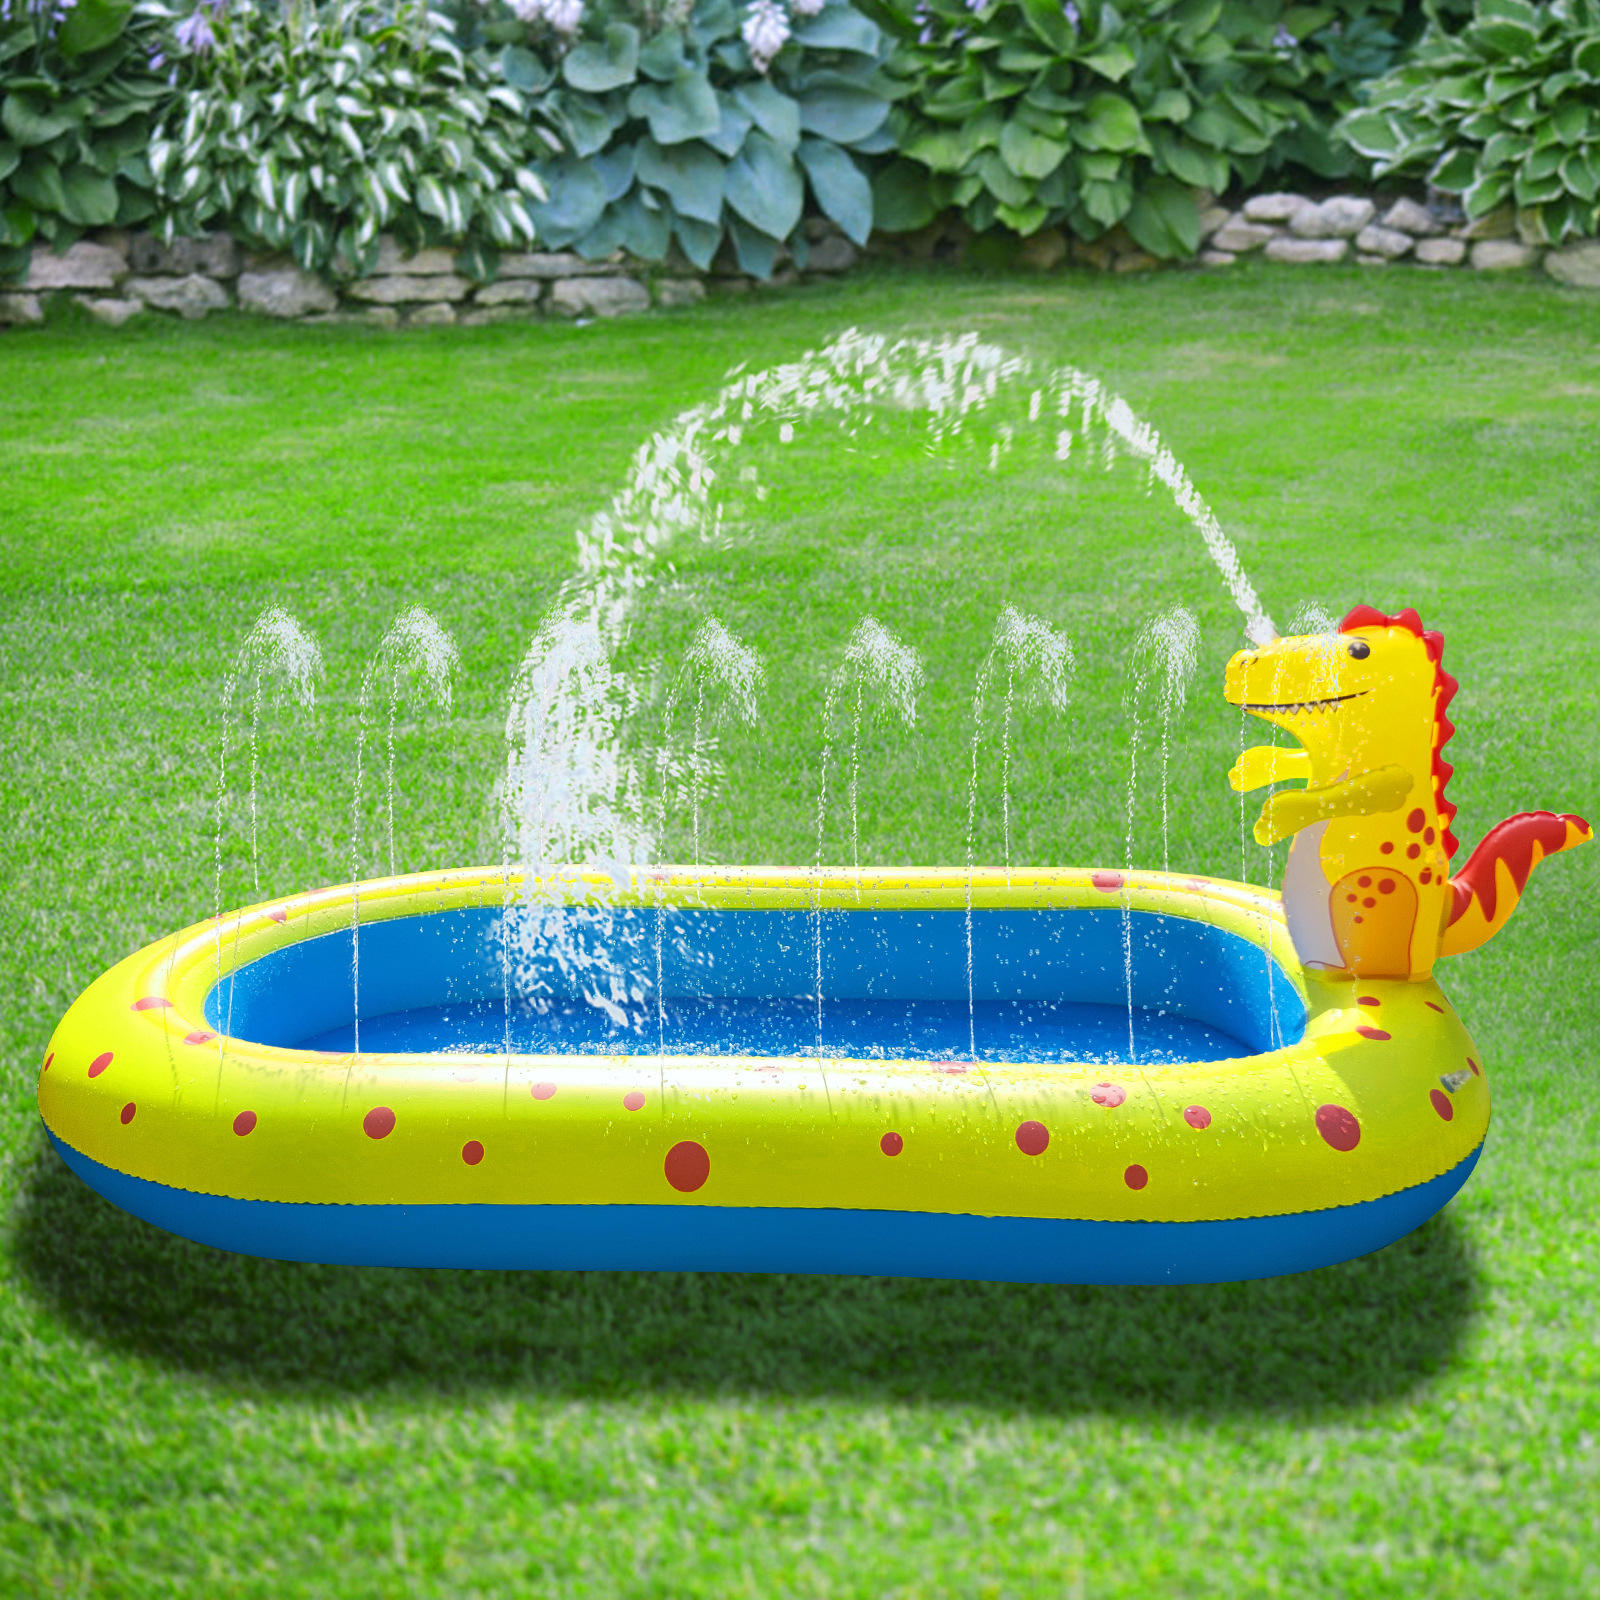 170cm PVC Inflatable mini kids plastic Swimming Pool for kids Dinosaur Fountain Outdoor Sprinkler Play Mat Children's Water Toy